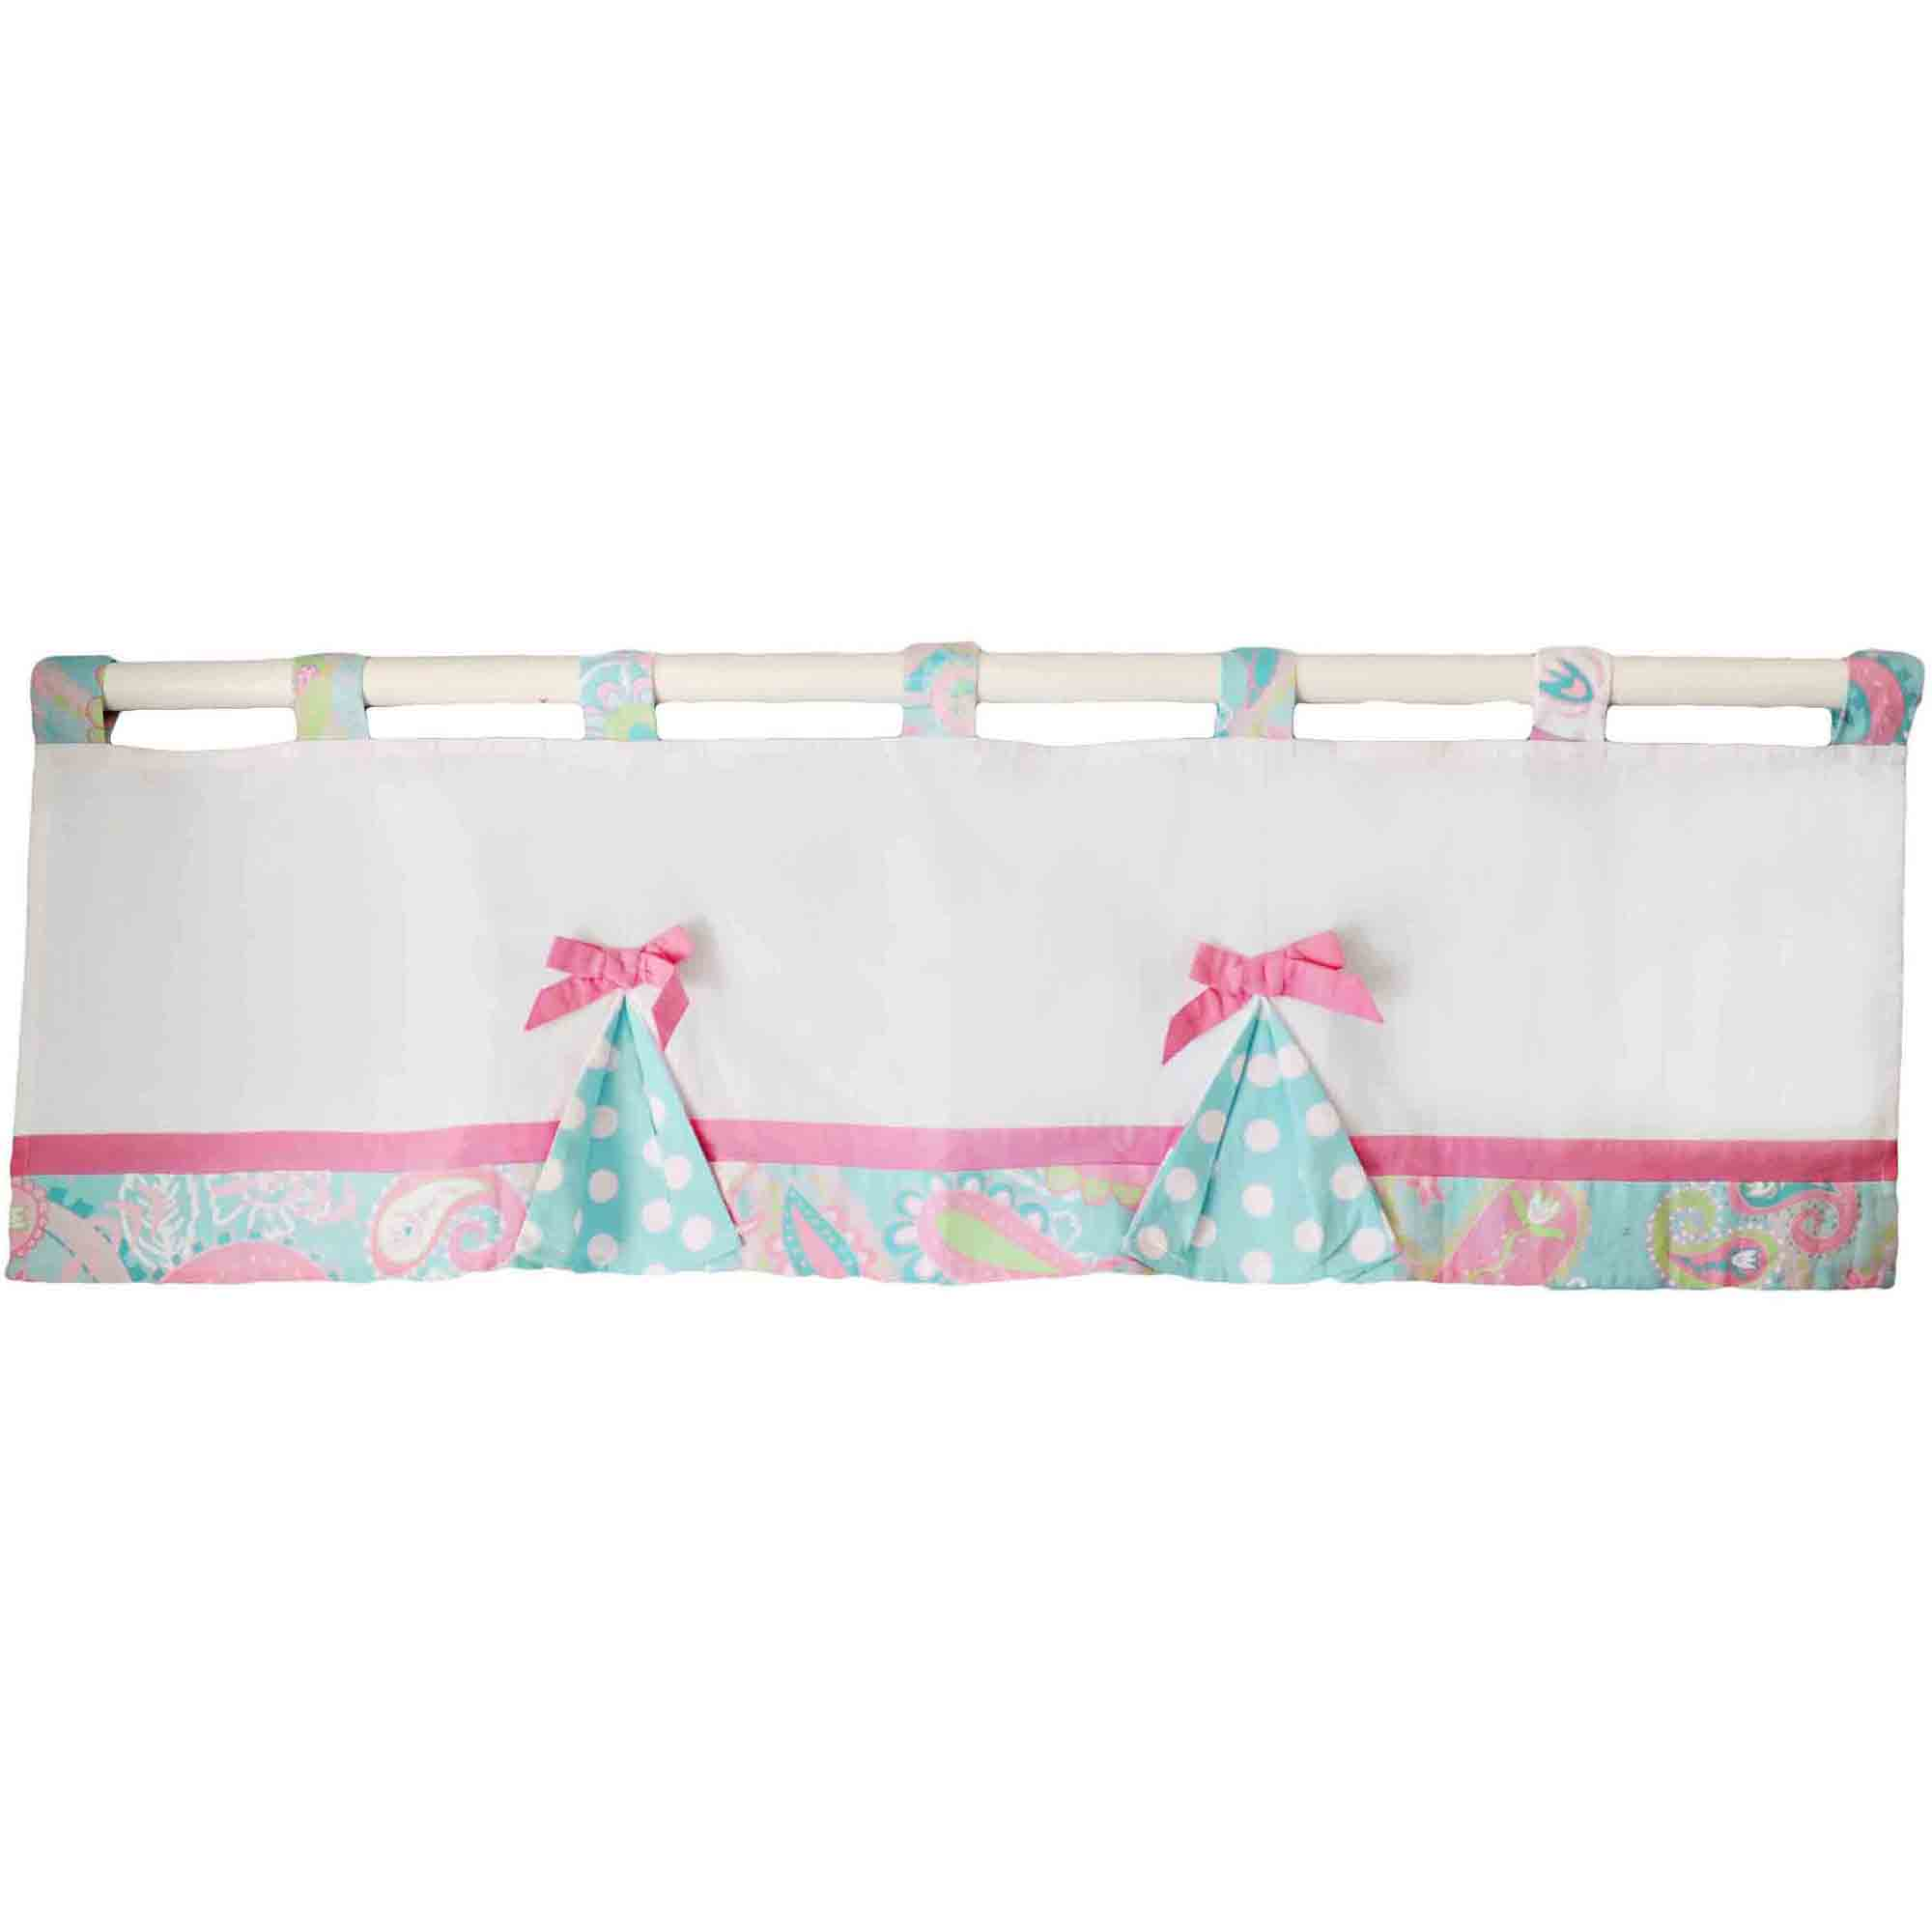 My Baby Sam Pixie Baby Curtain Valance, Aqua by My Baby Sam